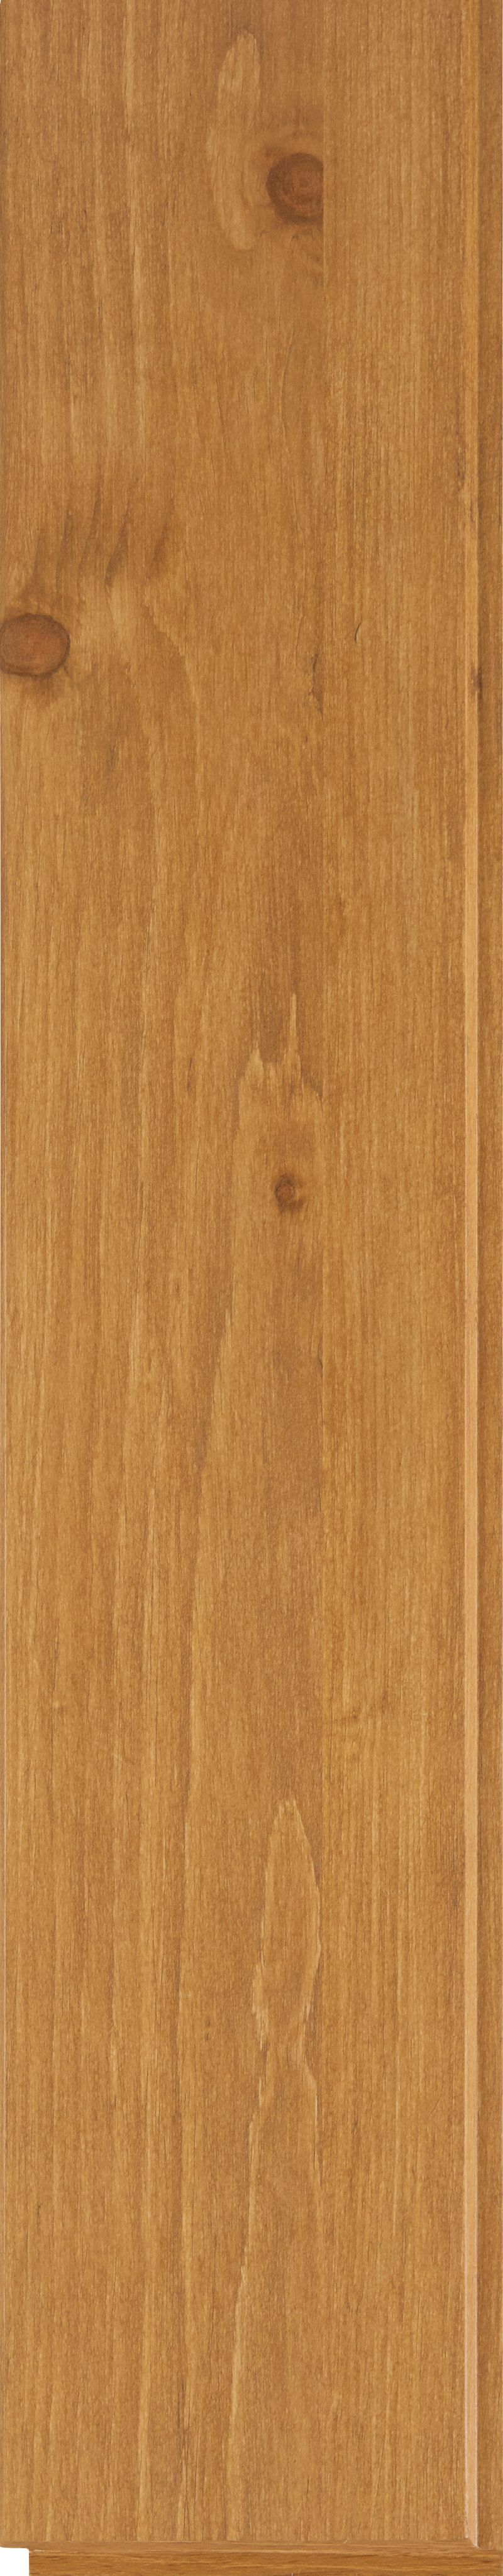 Wood Look Ceilings 1260, Armstrong Knotty Pine Laminate Flooring